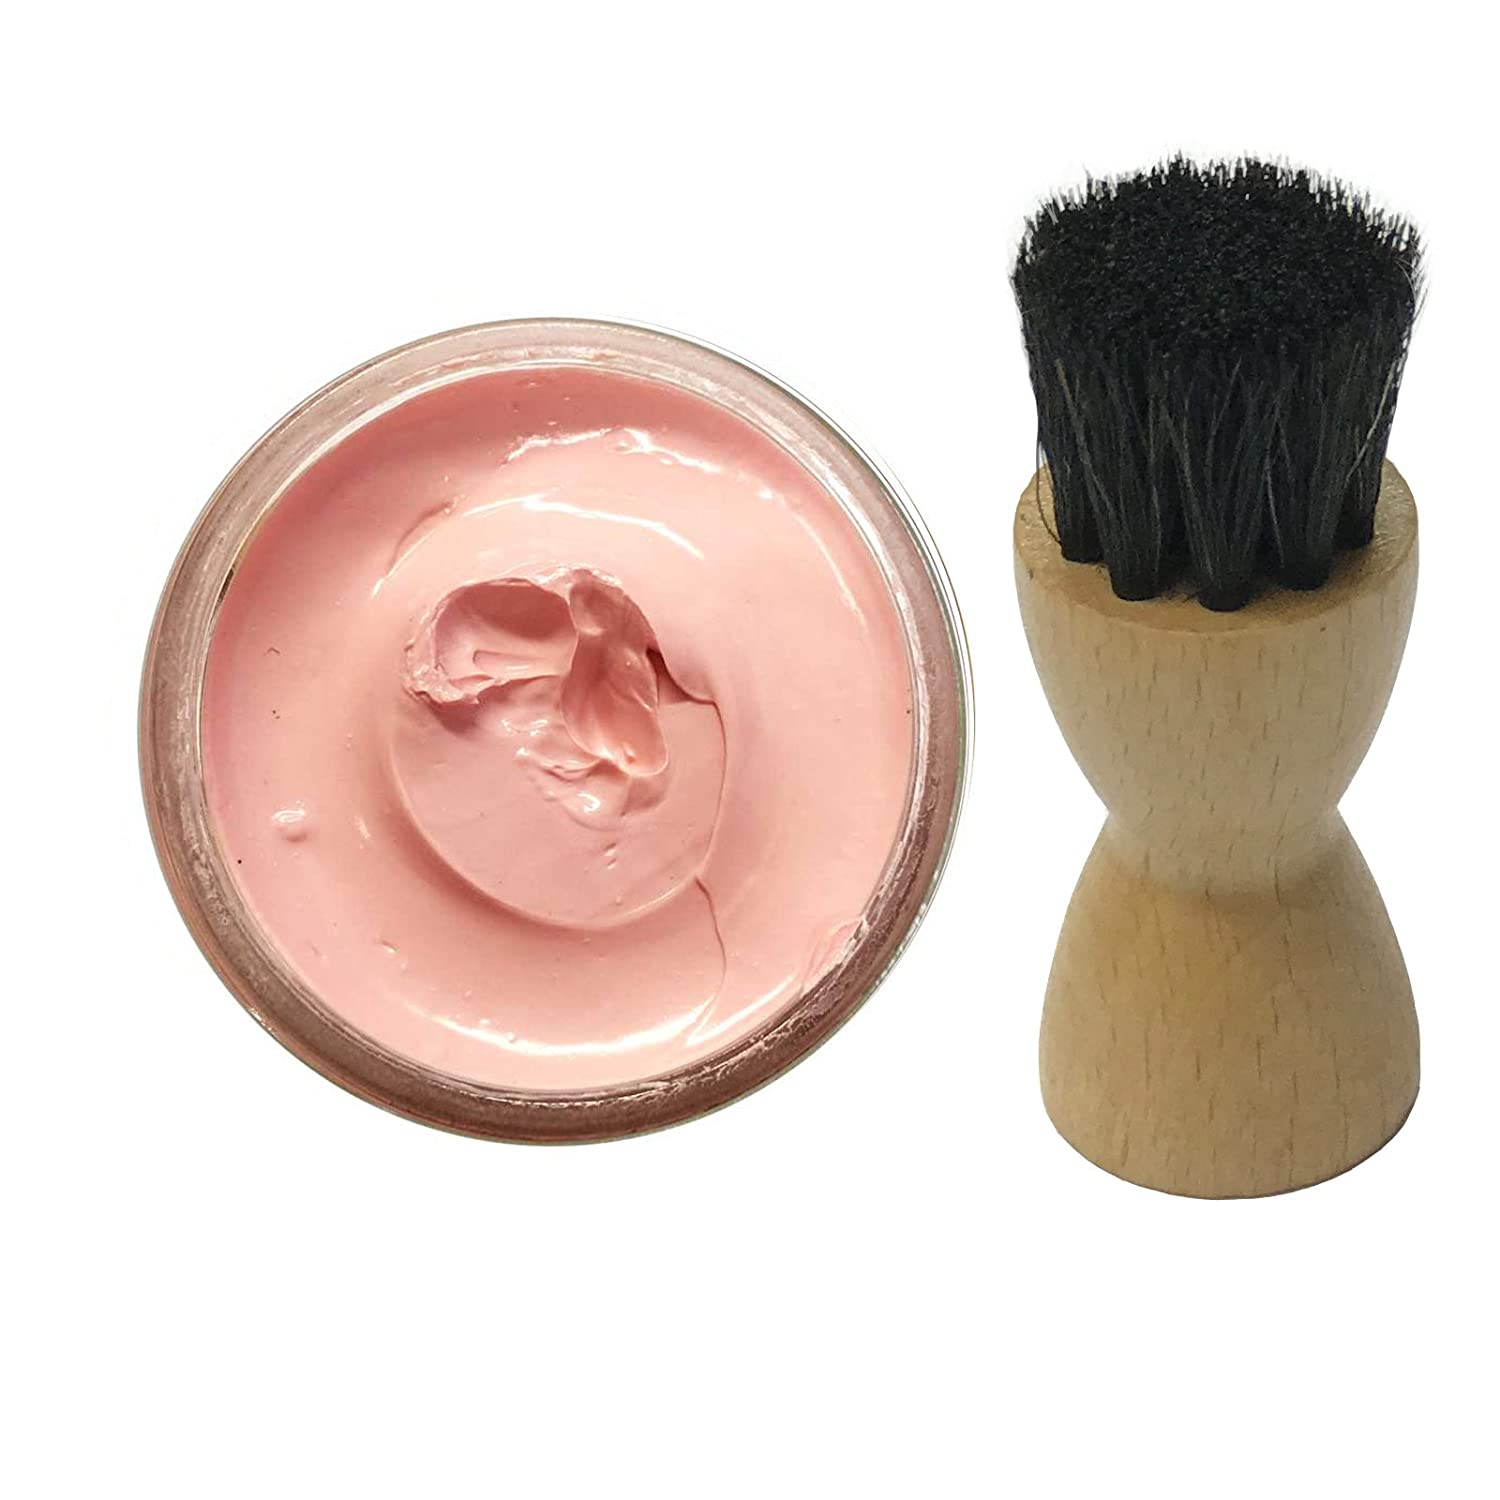 Famaco PINK ROSE DRAGEE Shoe Cream Polish 50ml & Famaco Application Brush